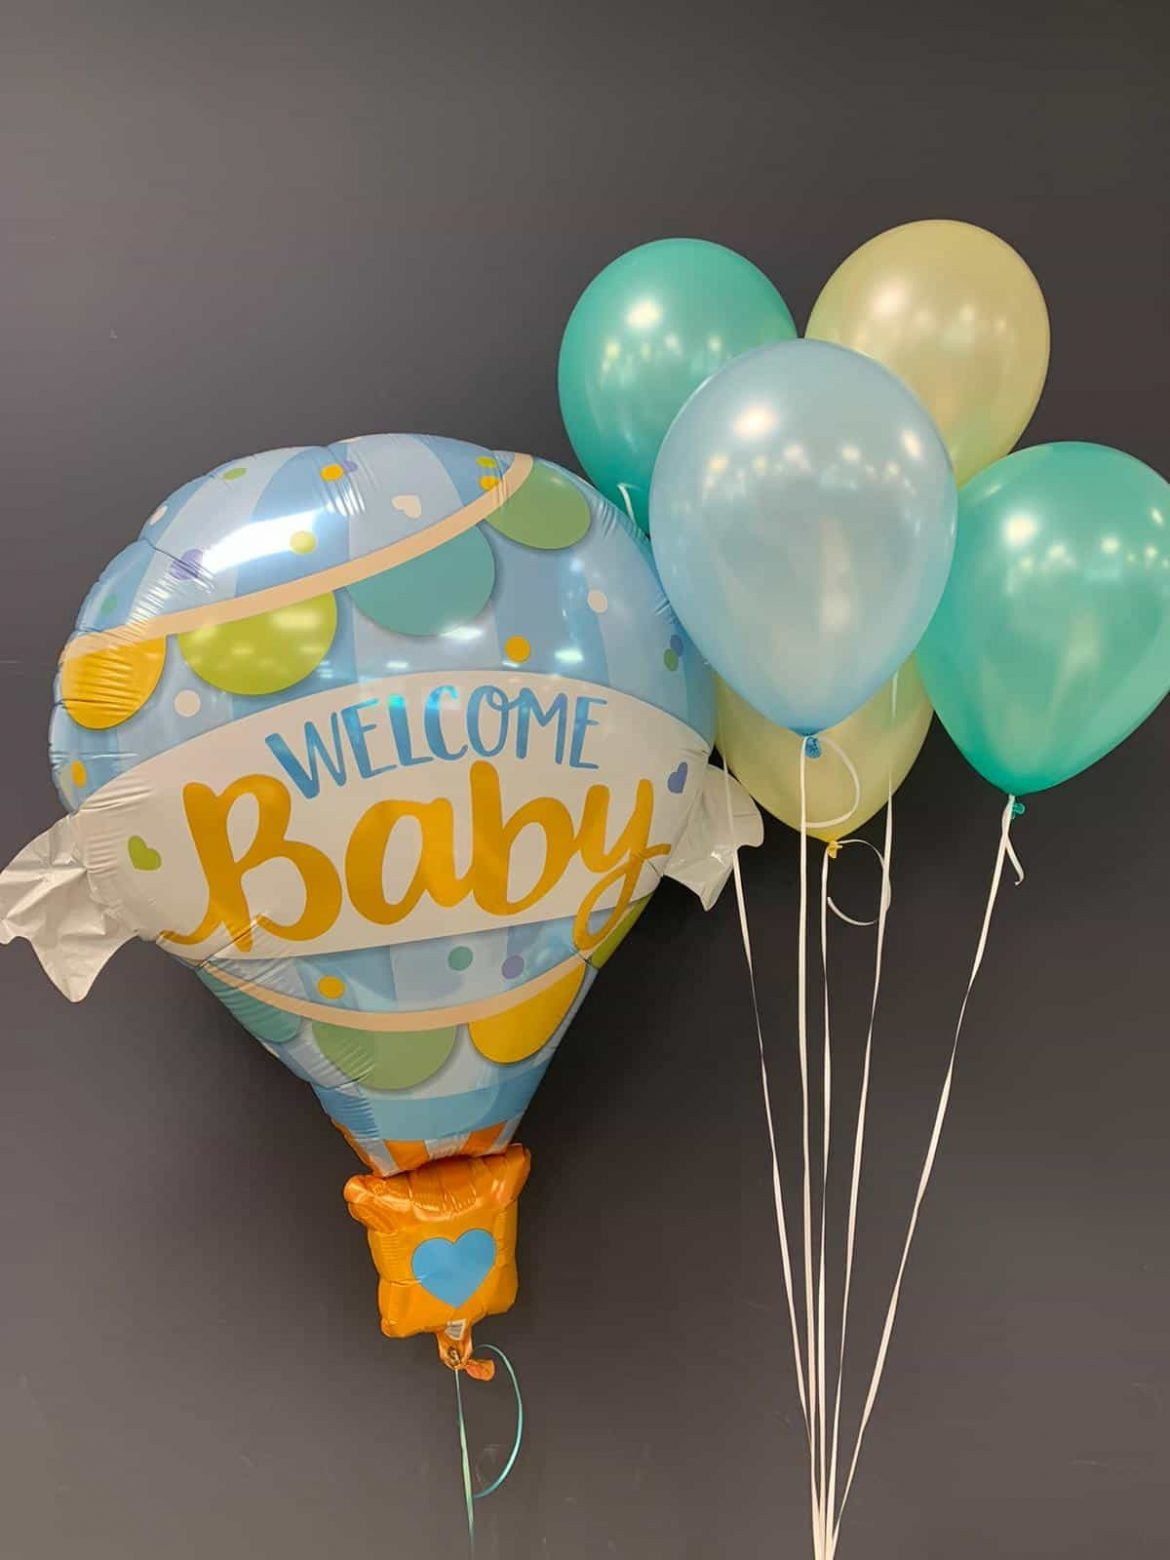 Welcome Baby € 9,90<br />Latexballons je € 1,95 1